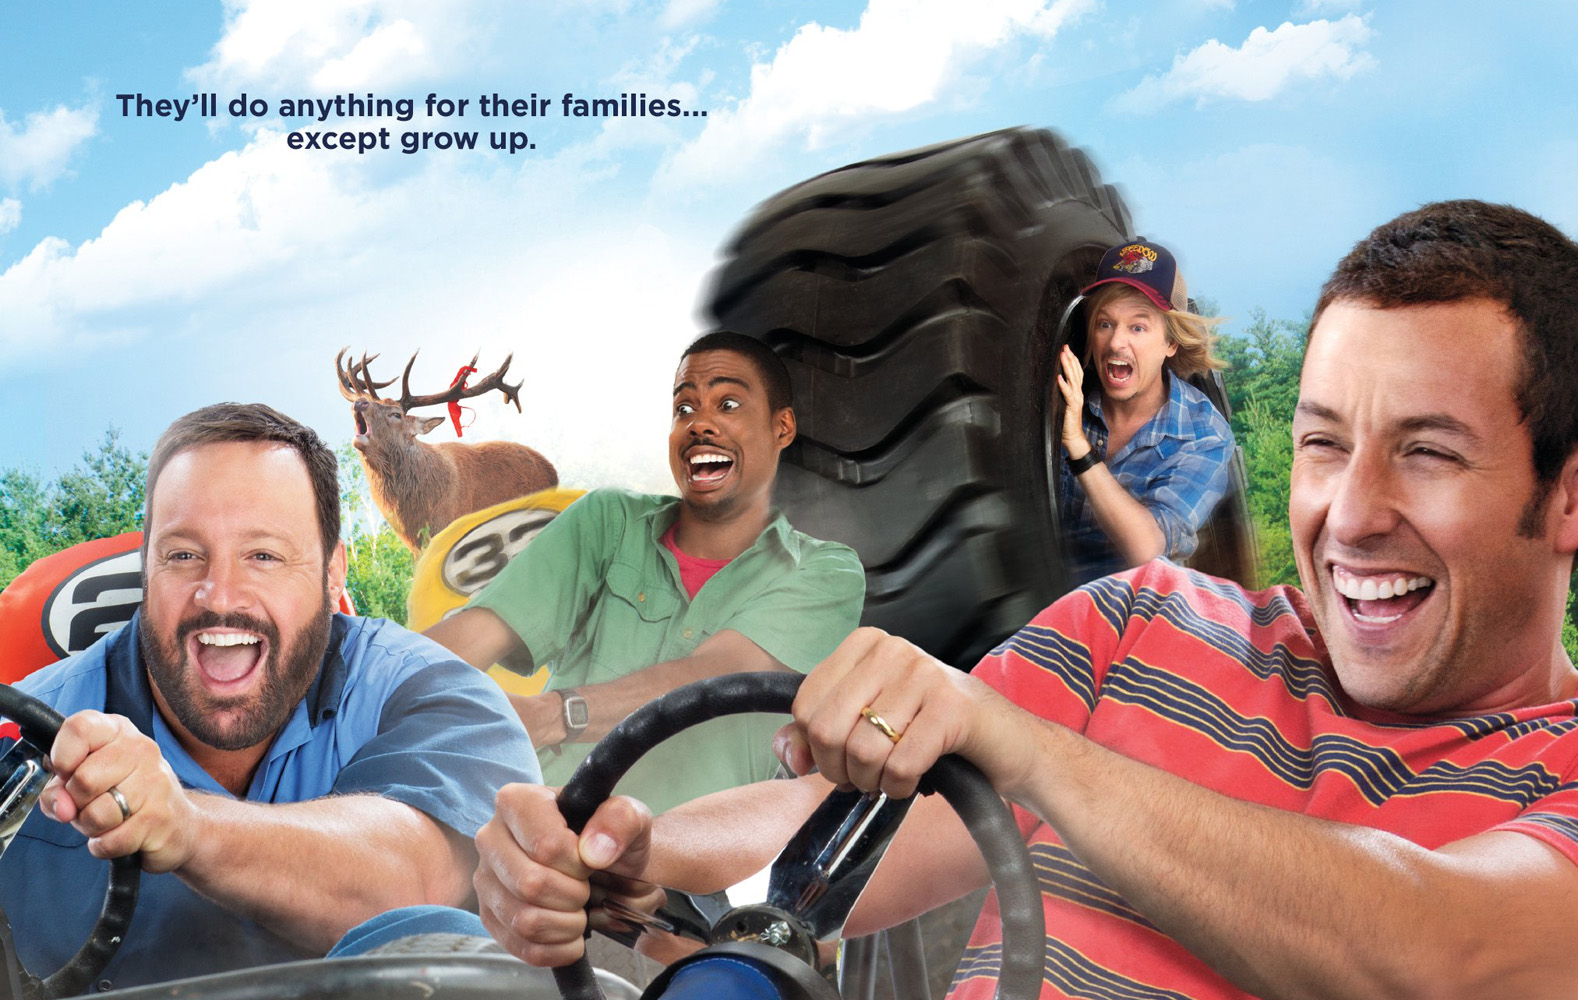 Buddies Of 'Grown Ups 2' Up For More Sheenanigans | The Film Geek Guy